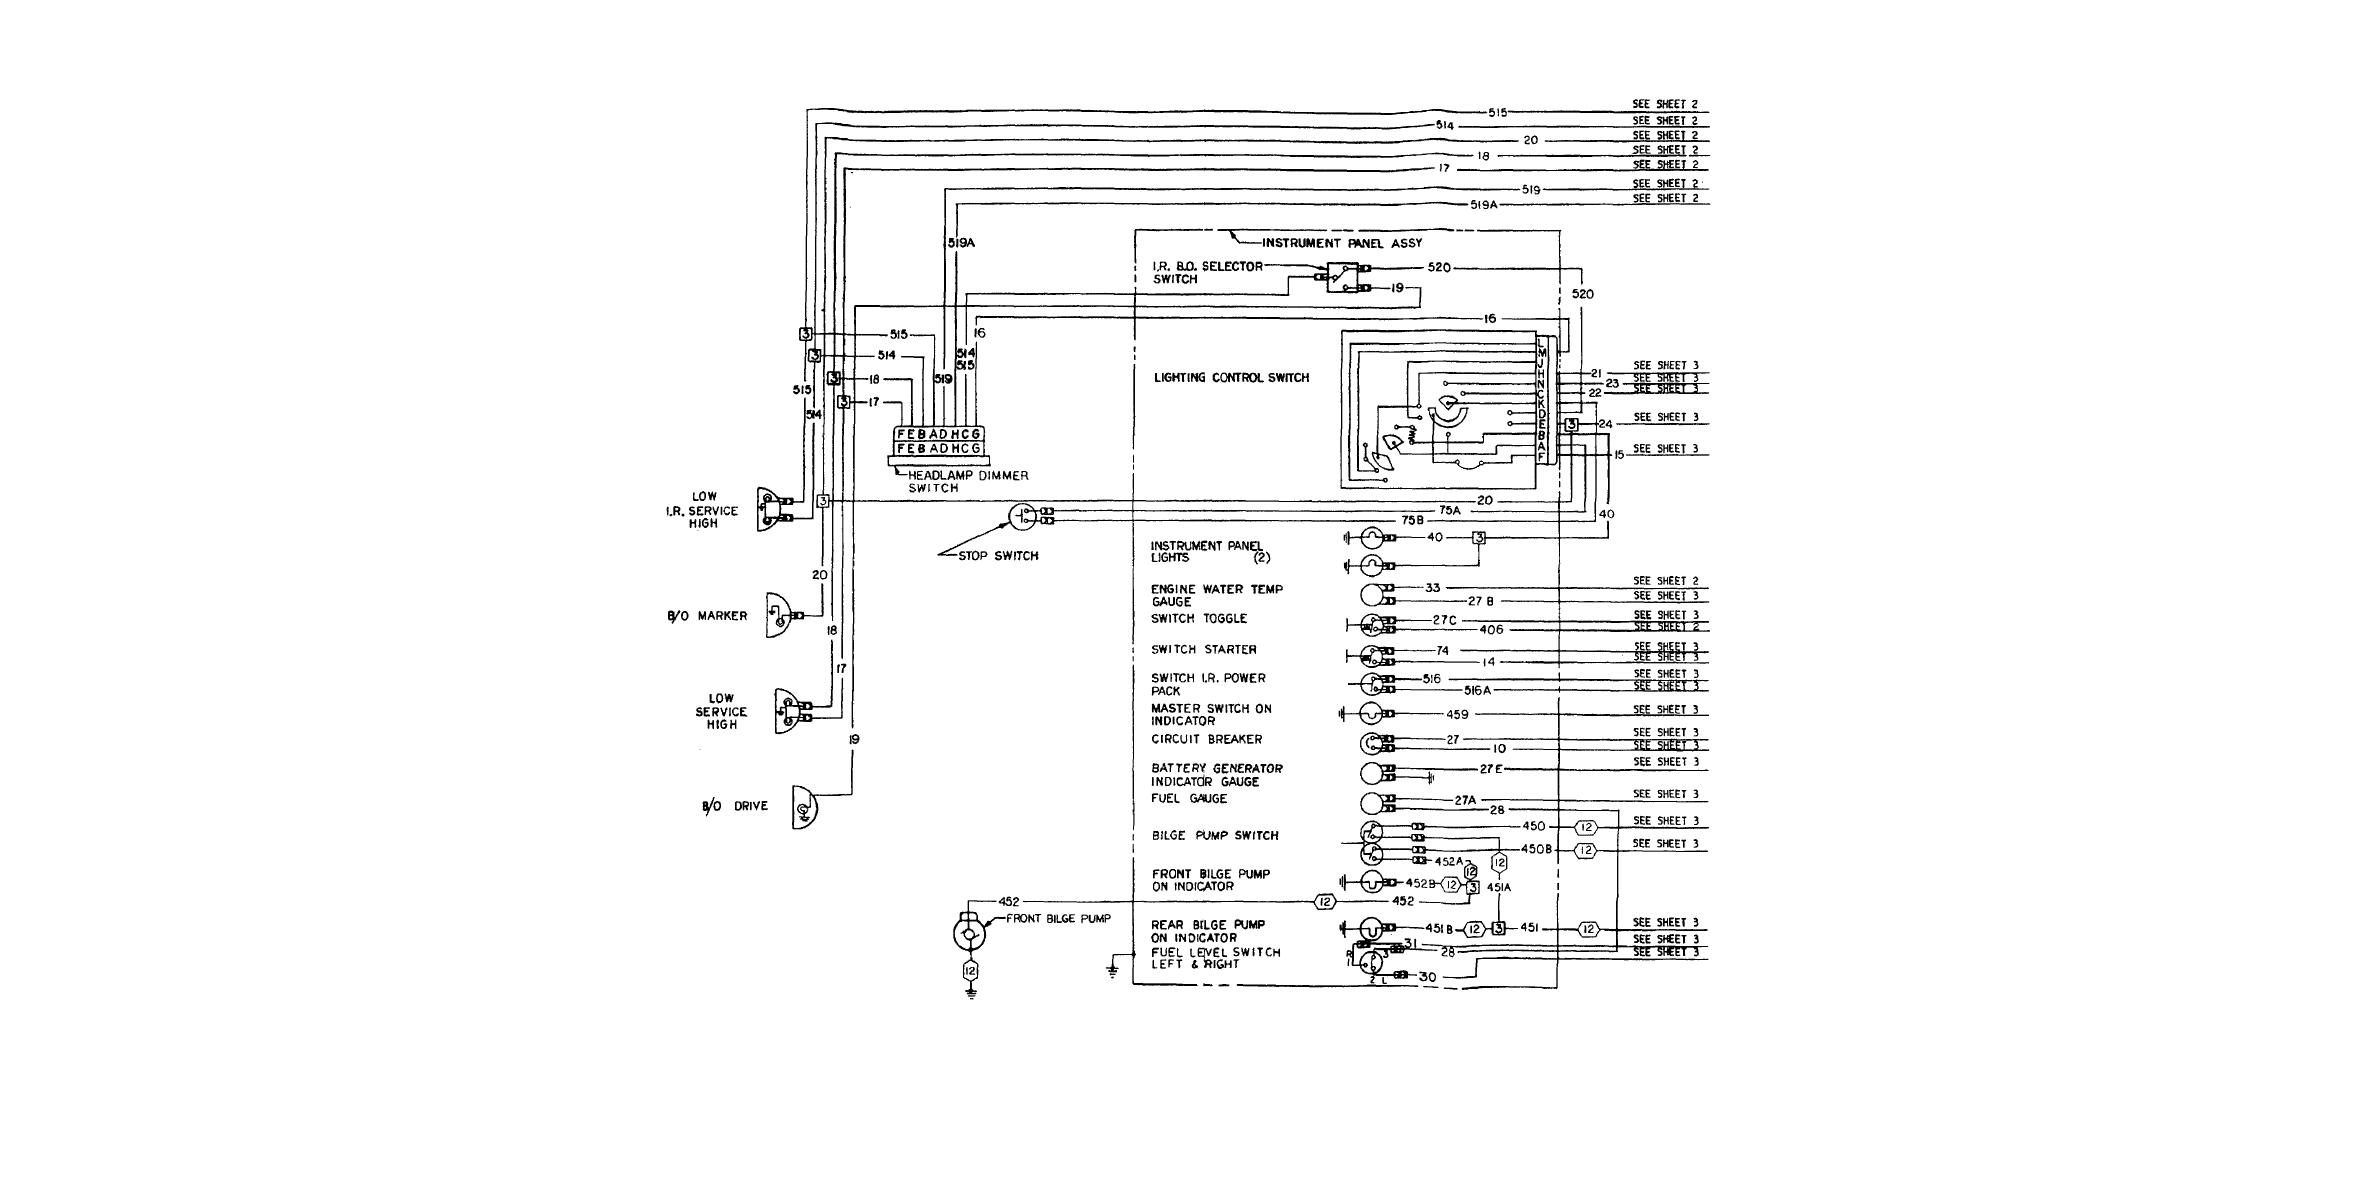 Residential Electric Service Calculator Not Lossing Wiring Diagram 200 For Wire Size Free Engine Power Electrical